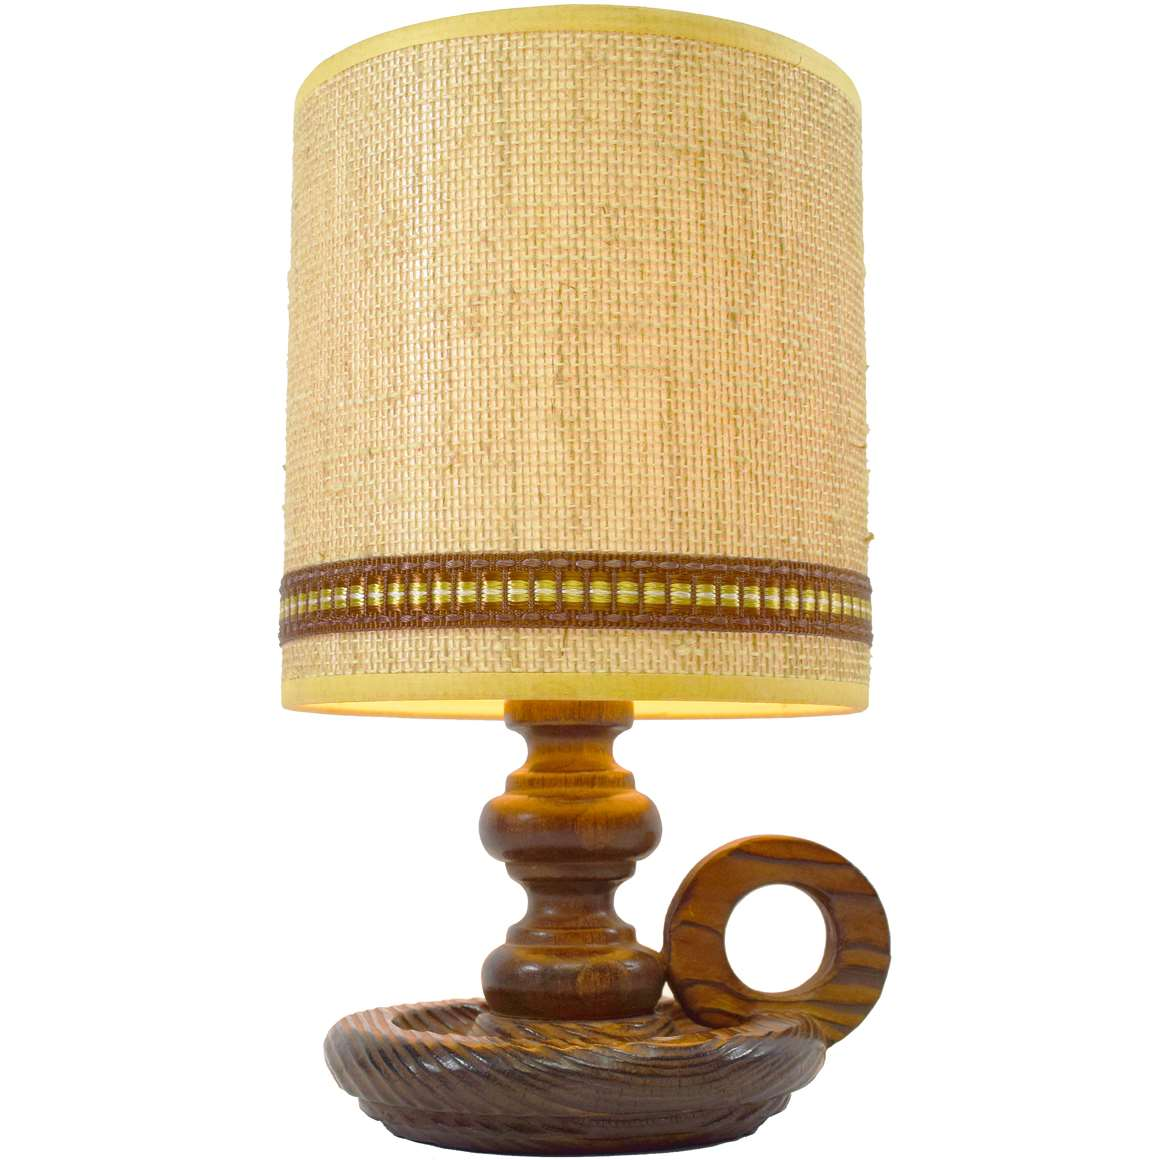 Pigot Candlestick Table Lamp